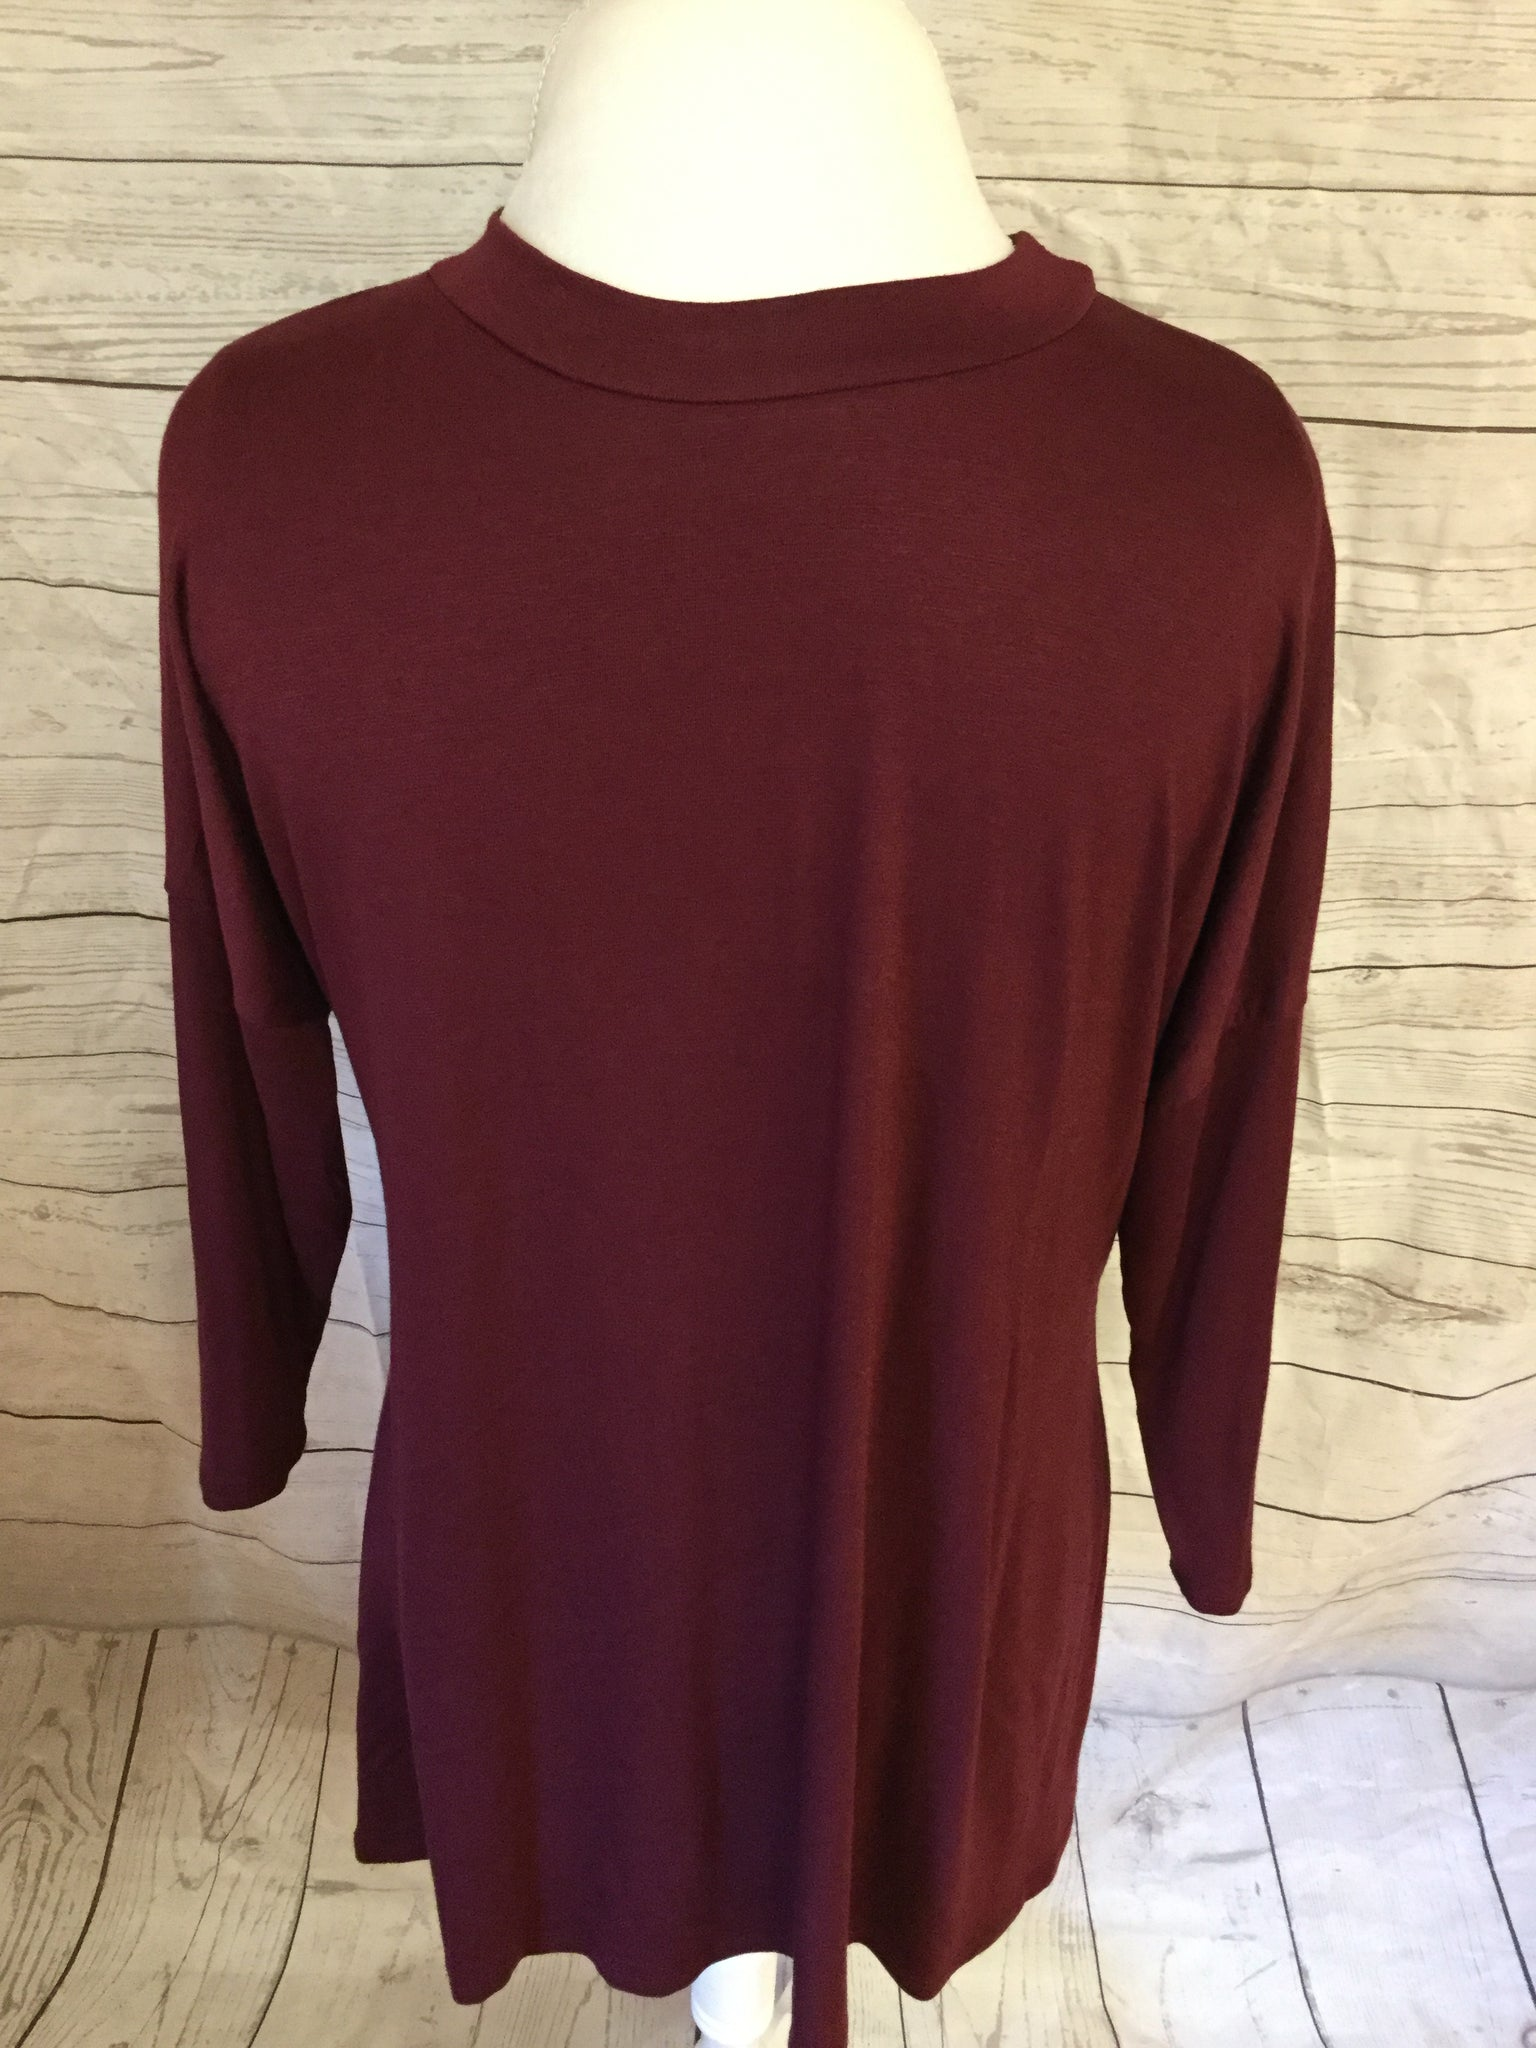 Straight 3/4 Sleeve Wine Edge Top